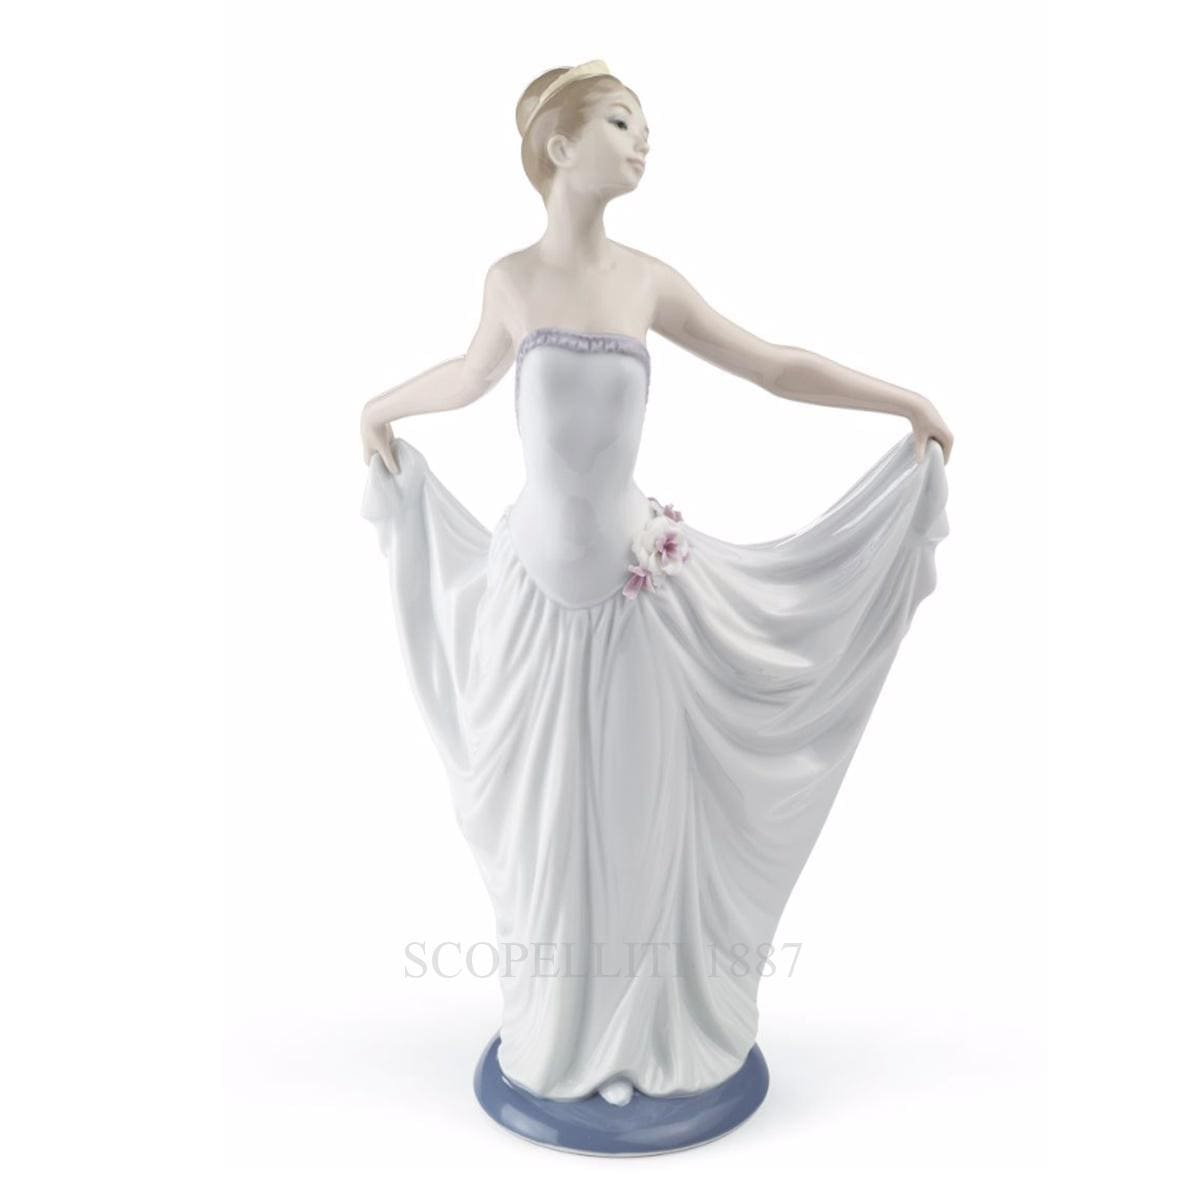 lladro ballet dancer porcelain figurine